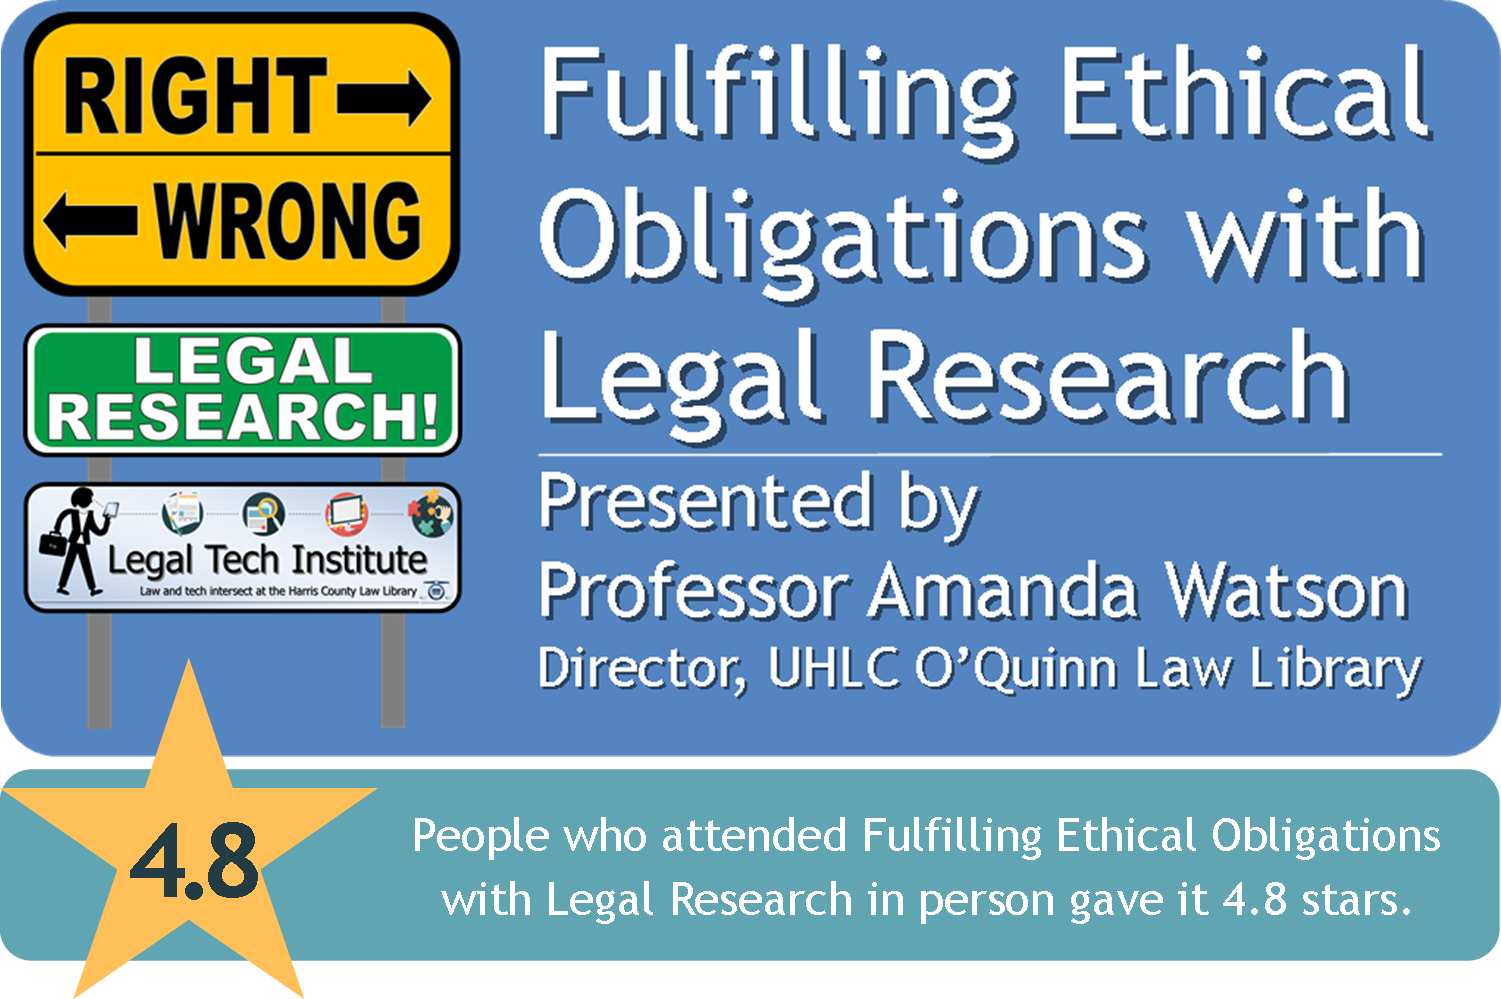 Fulfilling Ethical Obligations with  Legal Research  Presented by  Professor Amanda Watson  Director, UHLC O'Quinn Law Library  People who attended Fulfilling Ethical Obligations with Legal Research in person gave it 4.8 stars.  CLE from the Legal Tech Institute at the Harris County Law Library. Click to view on demand learning page.